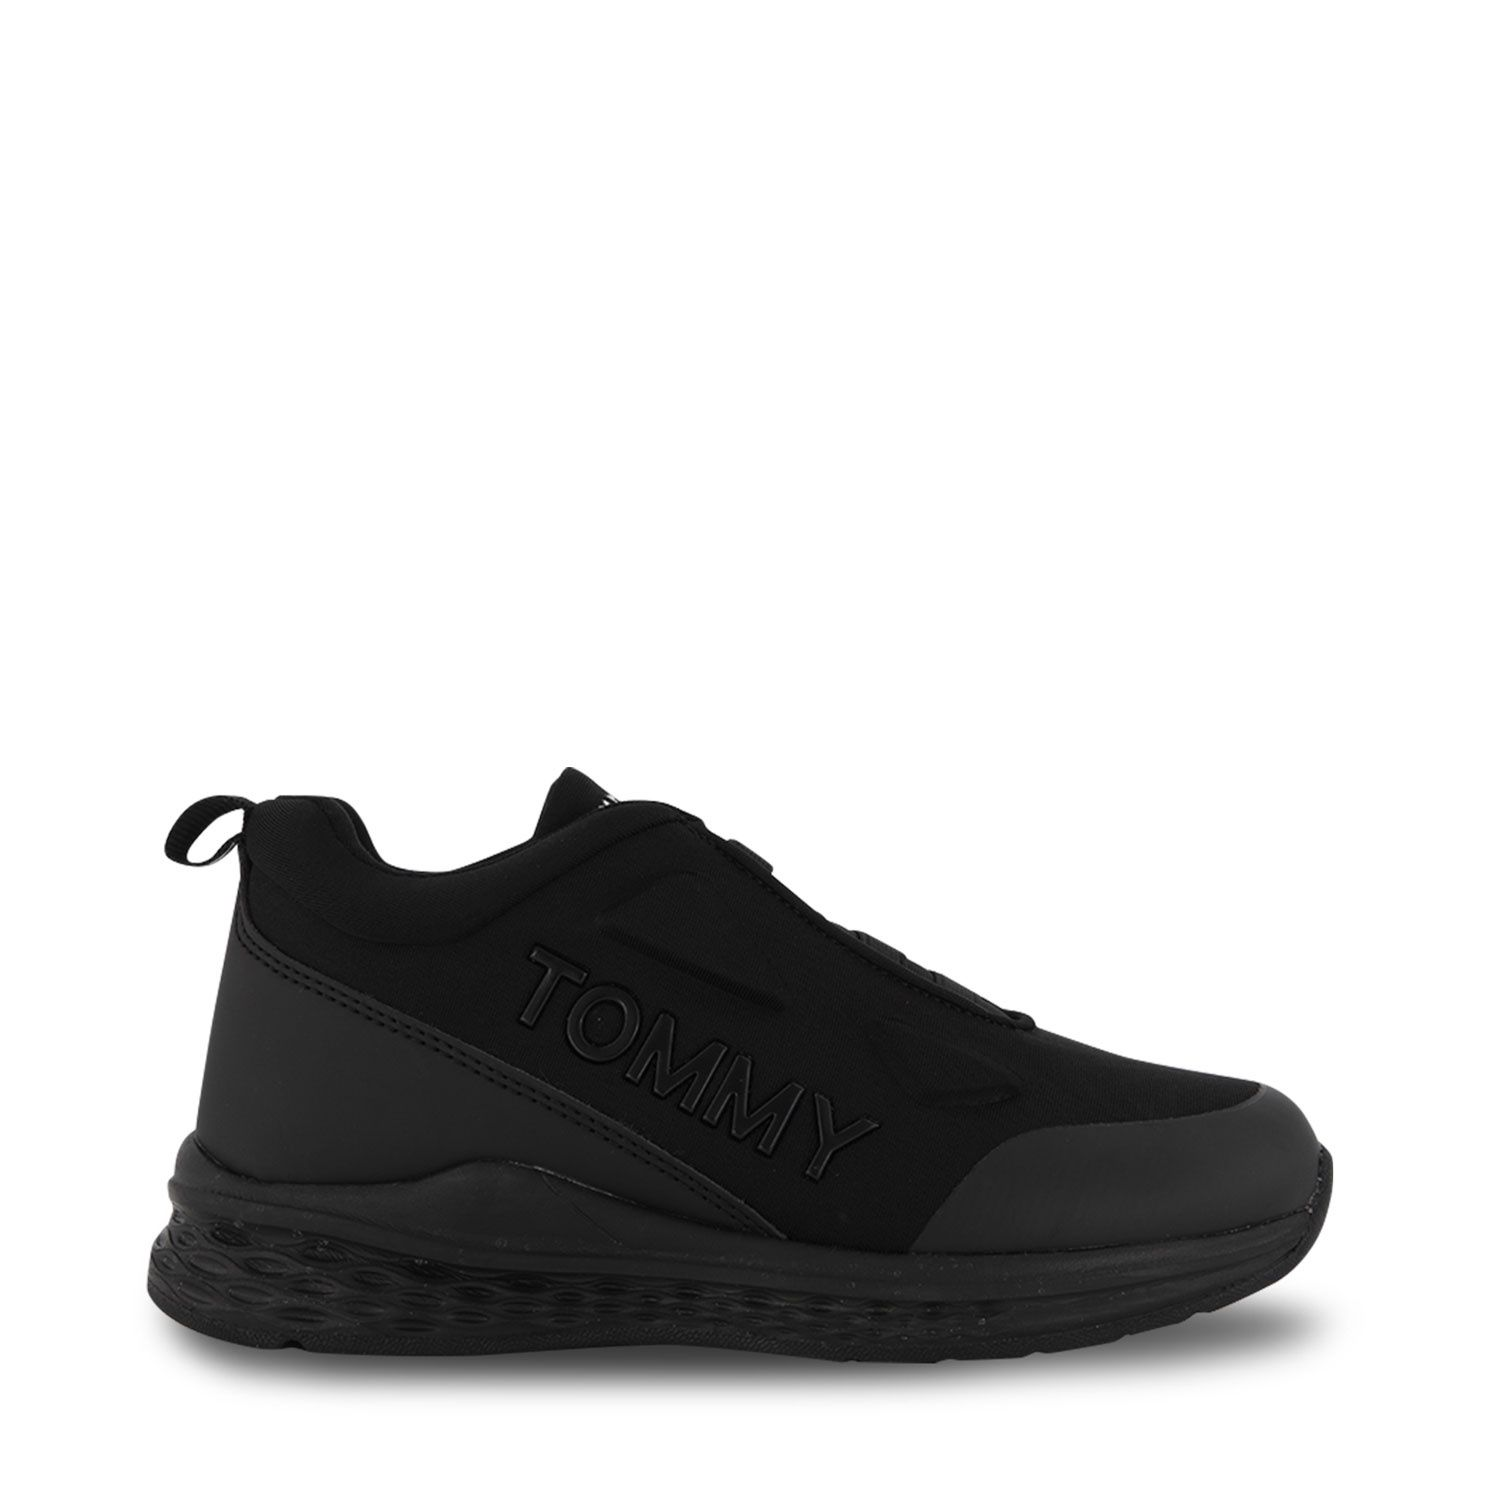 Picture of Tommy Hilfiger 32082 kids sneakers black